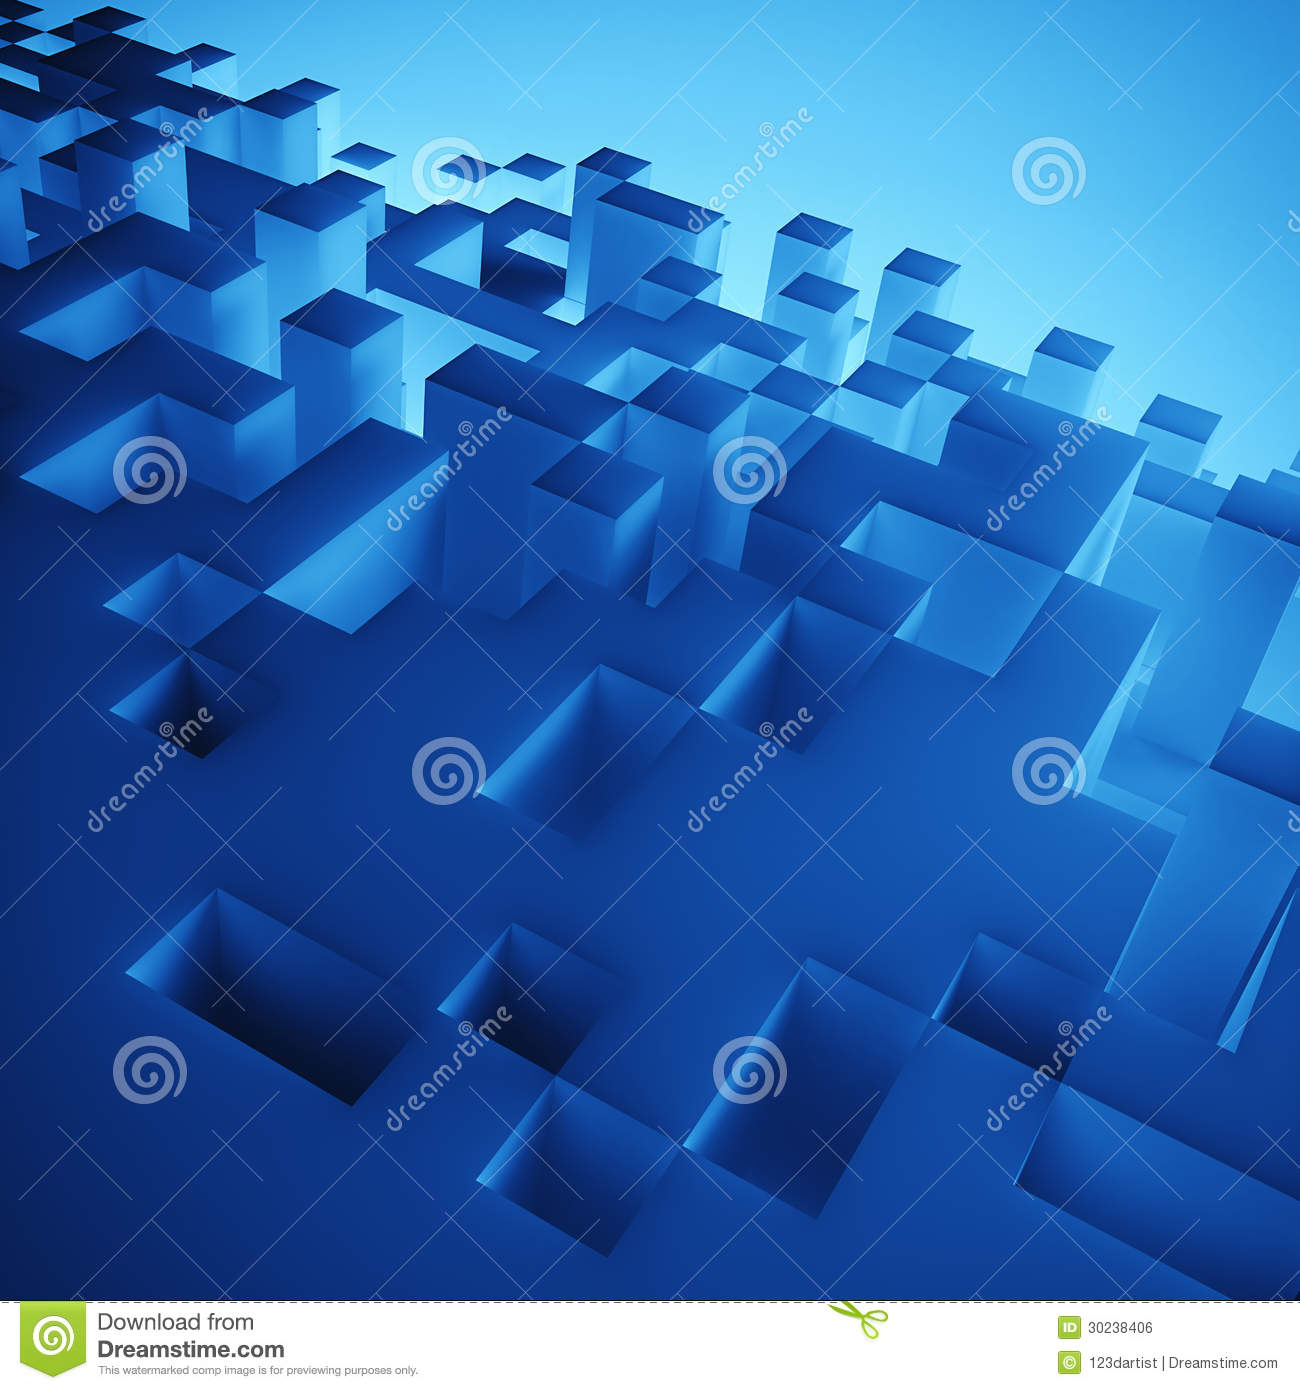 3d abstract cubes background - photo #6